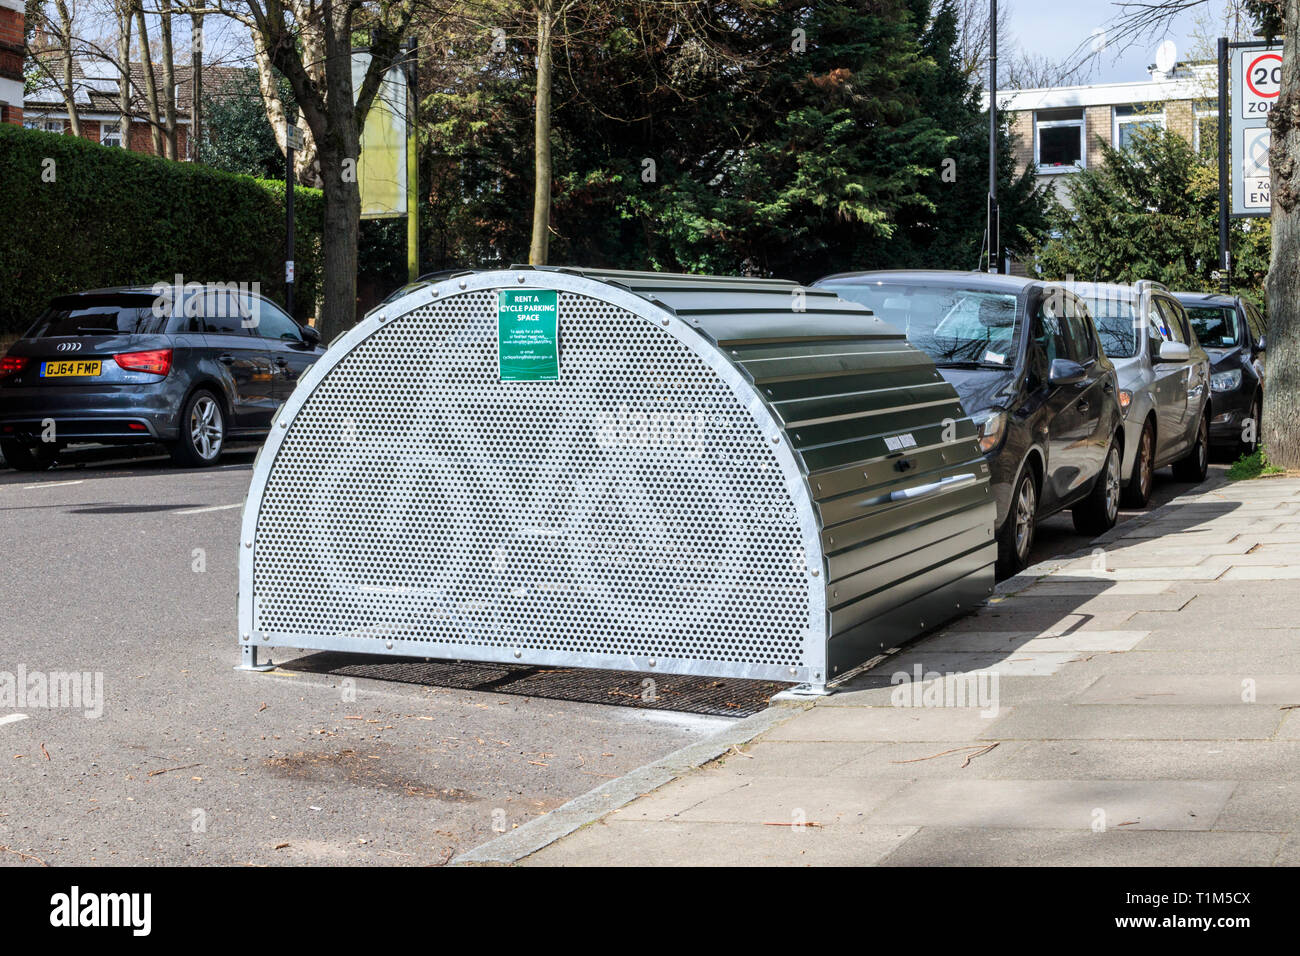 Cycle Hoop cycle storage hangars, installed by Islington Council in response to requests from residents for secure bicycle parking, London, UK - Stock Image